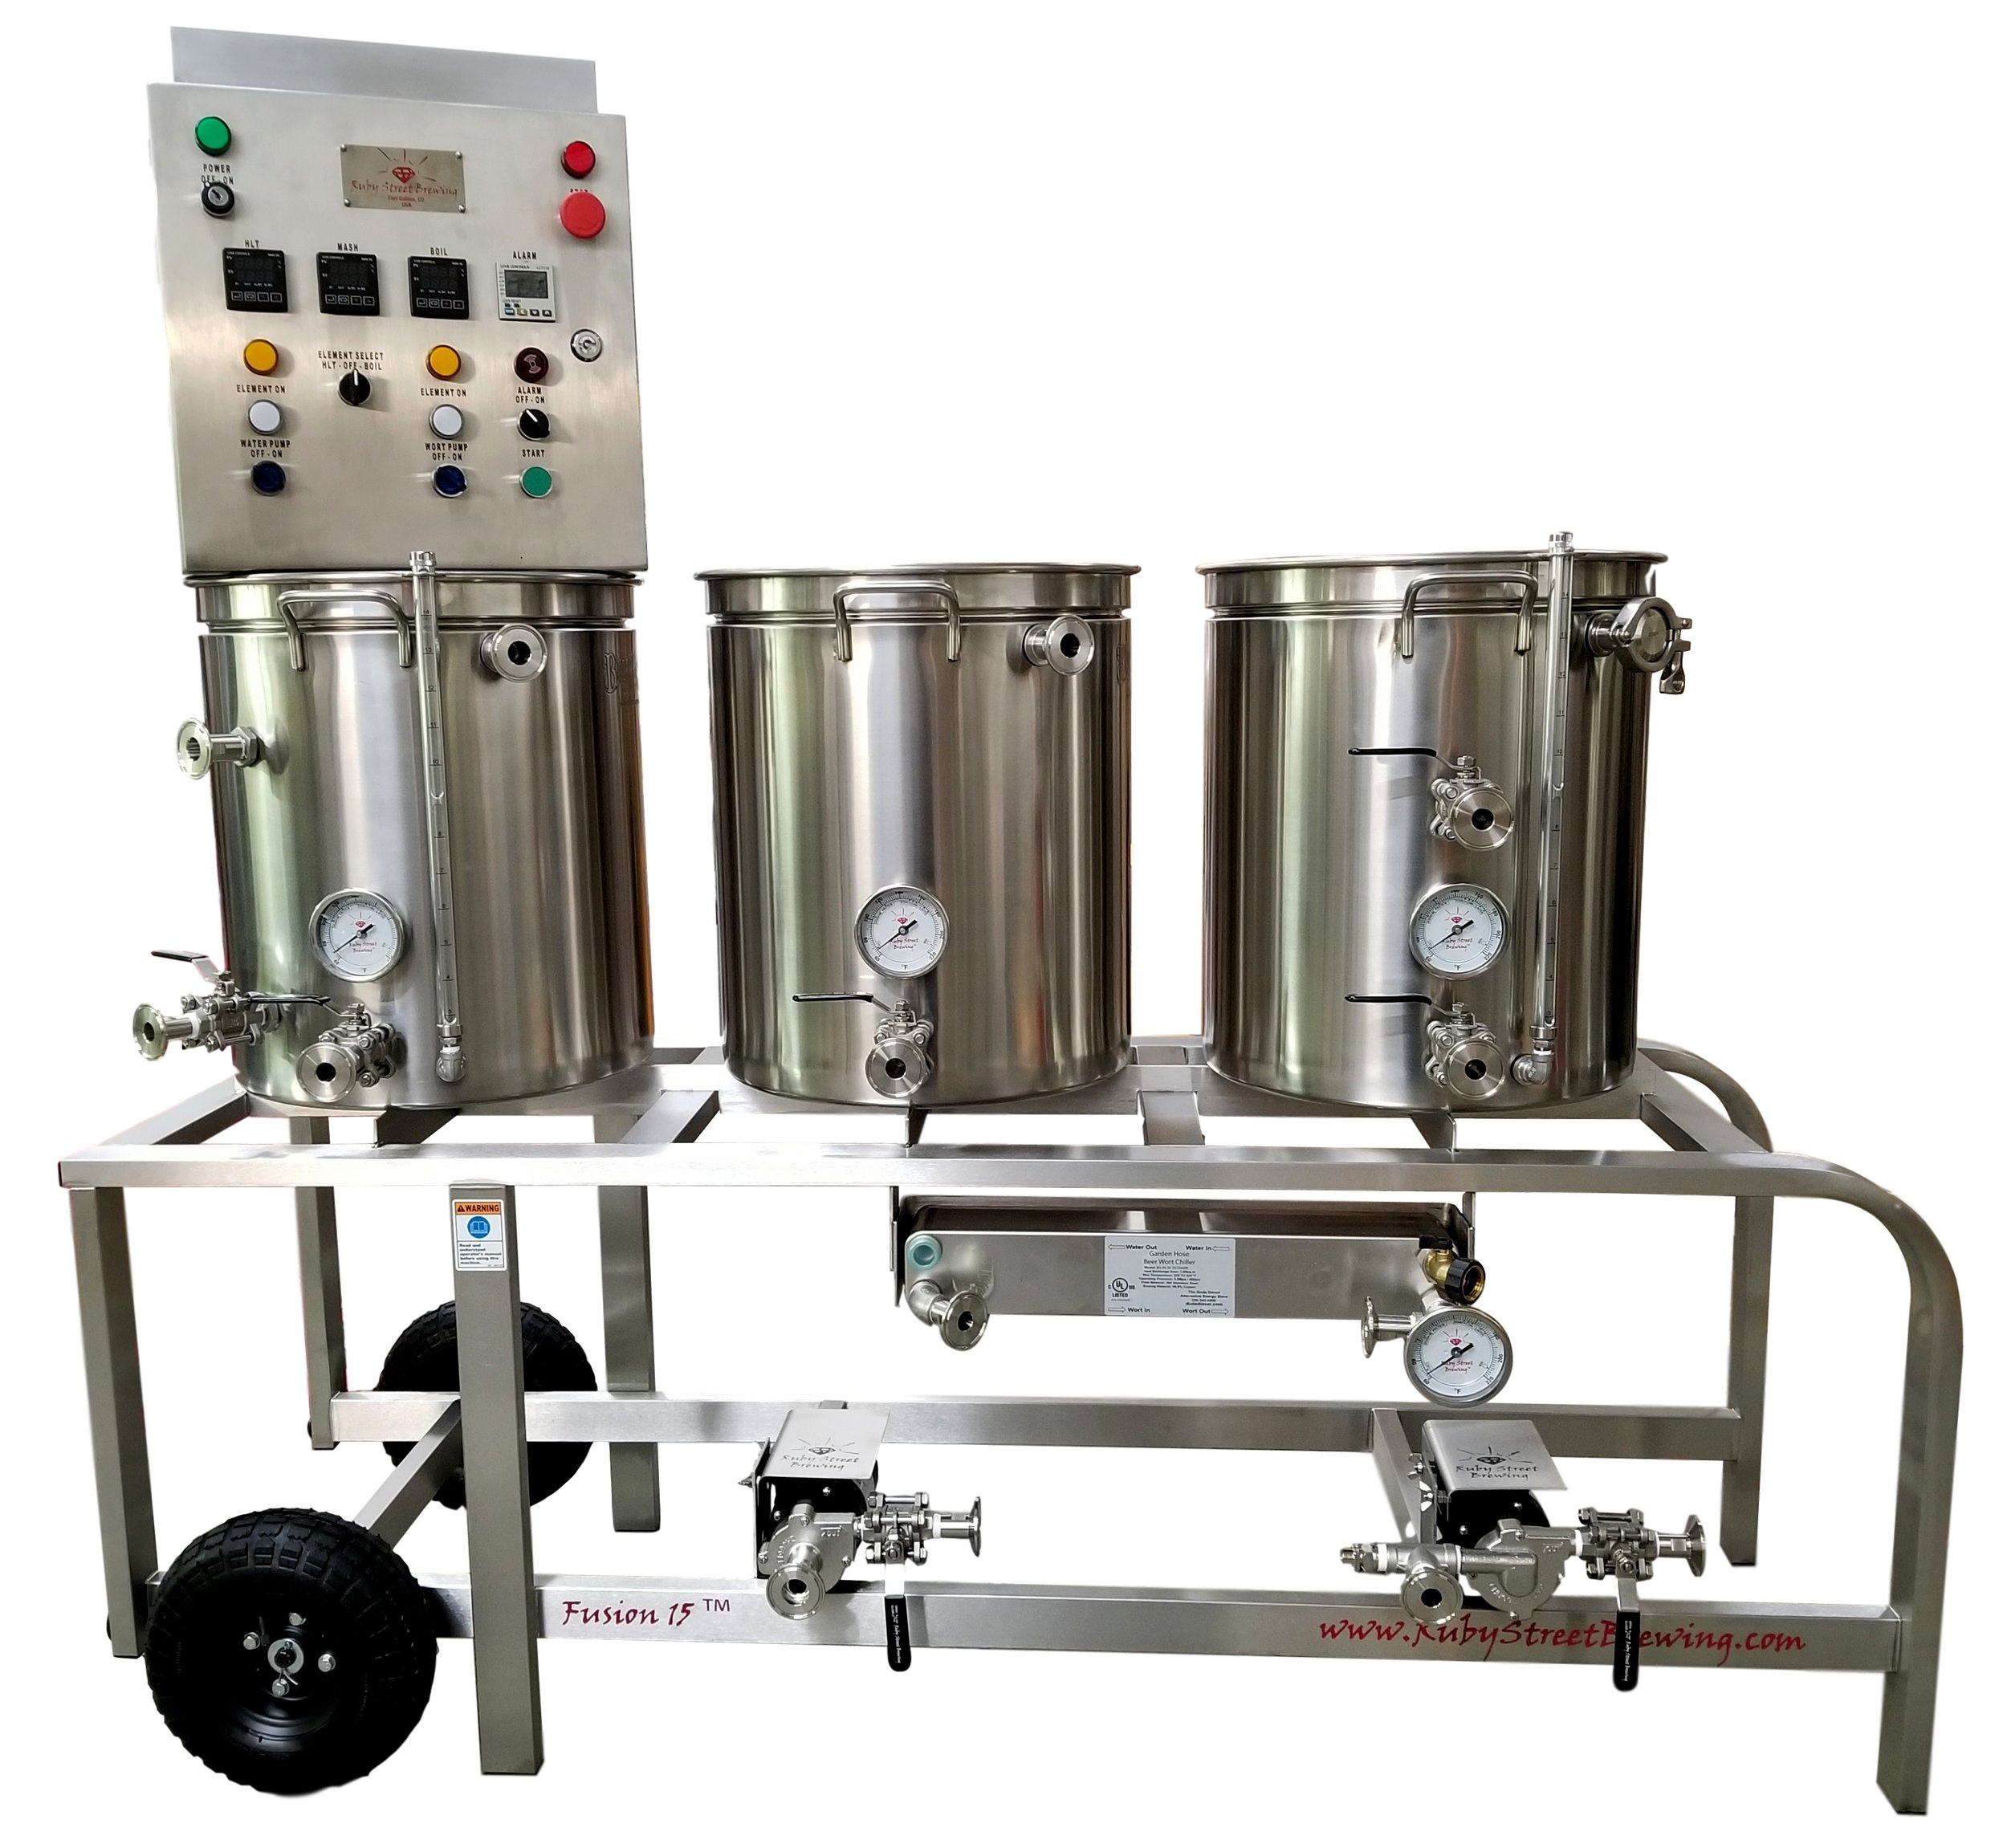 Shown with options: Stainless Frame Upgrade, Plate Chiller, Whirlpool, Sight Level Gauges, Through-wall Boil, Boil Kettle Thermometer